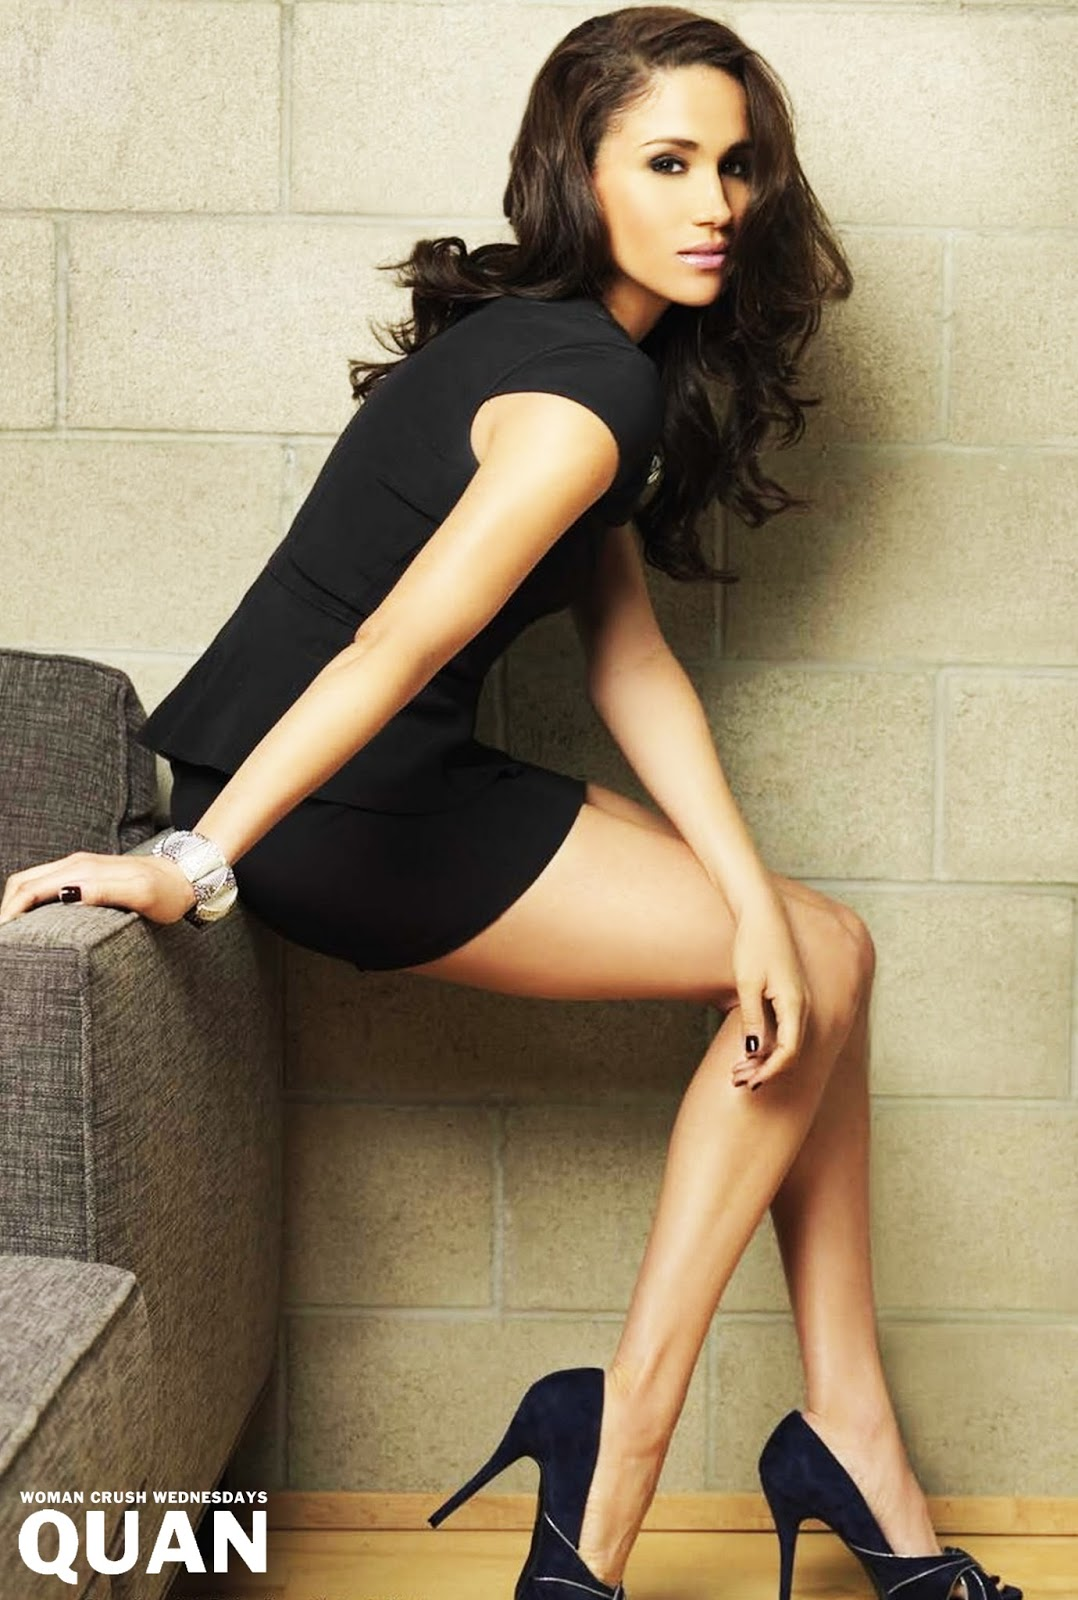 Sizzling Hot Actress Meghan Markle Nude Hot 1710058 Hd Wallpaper Backgrounds Download 9gag is your best source of fun! sizzling hot actress meghan markle